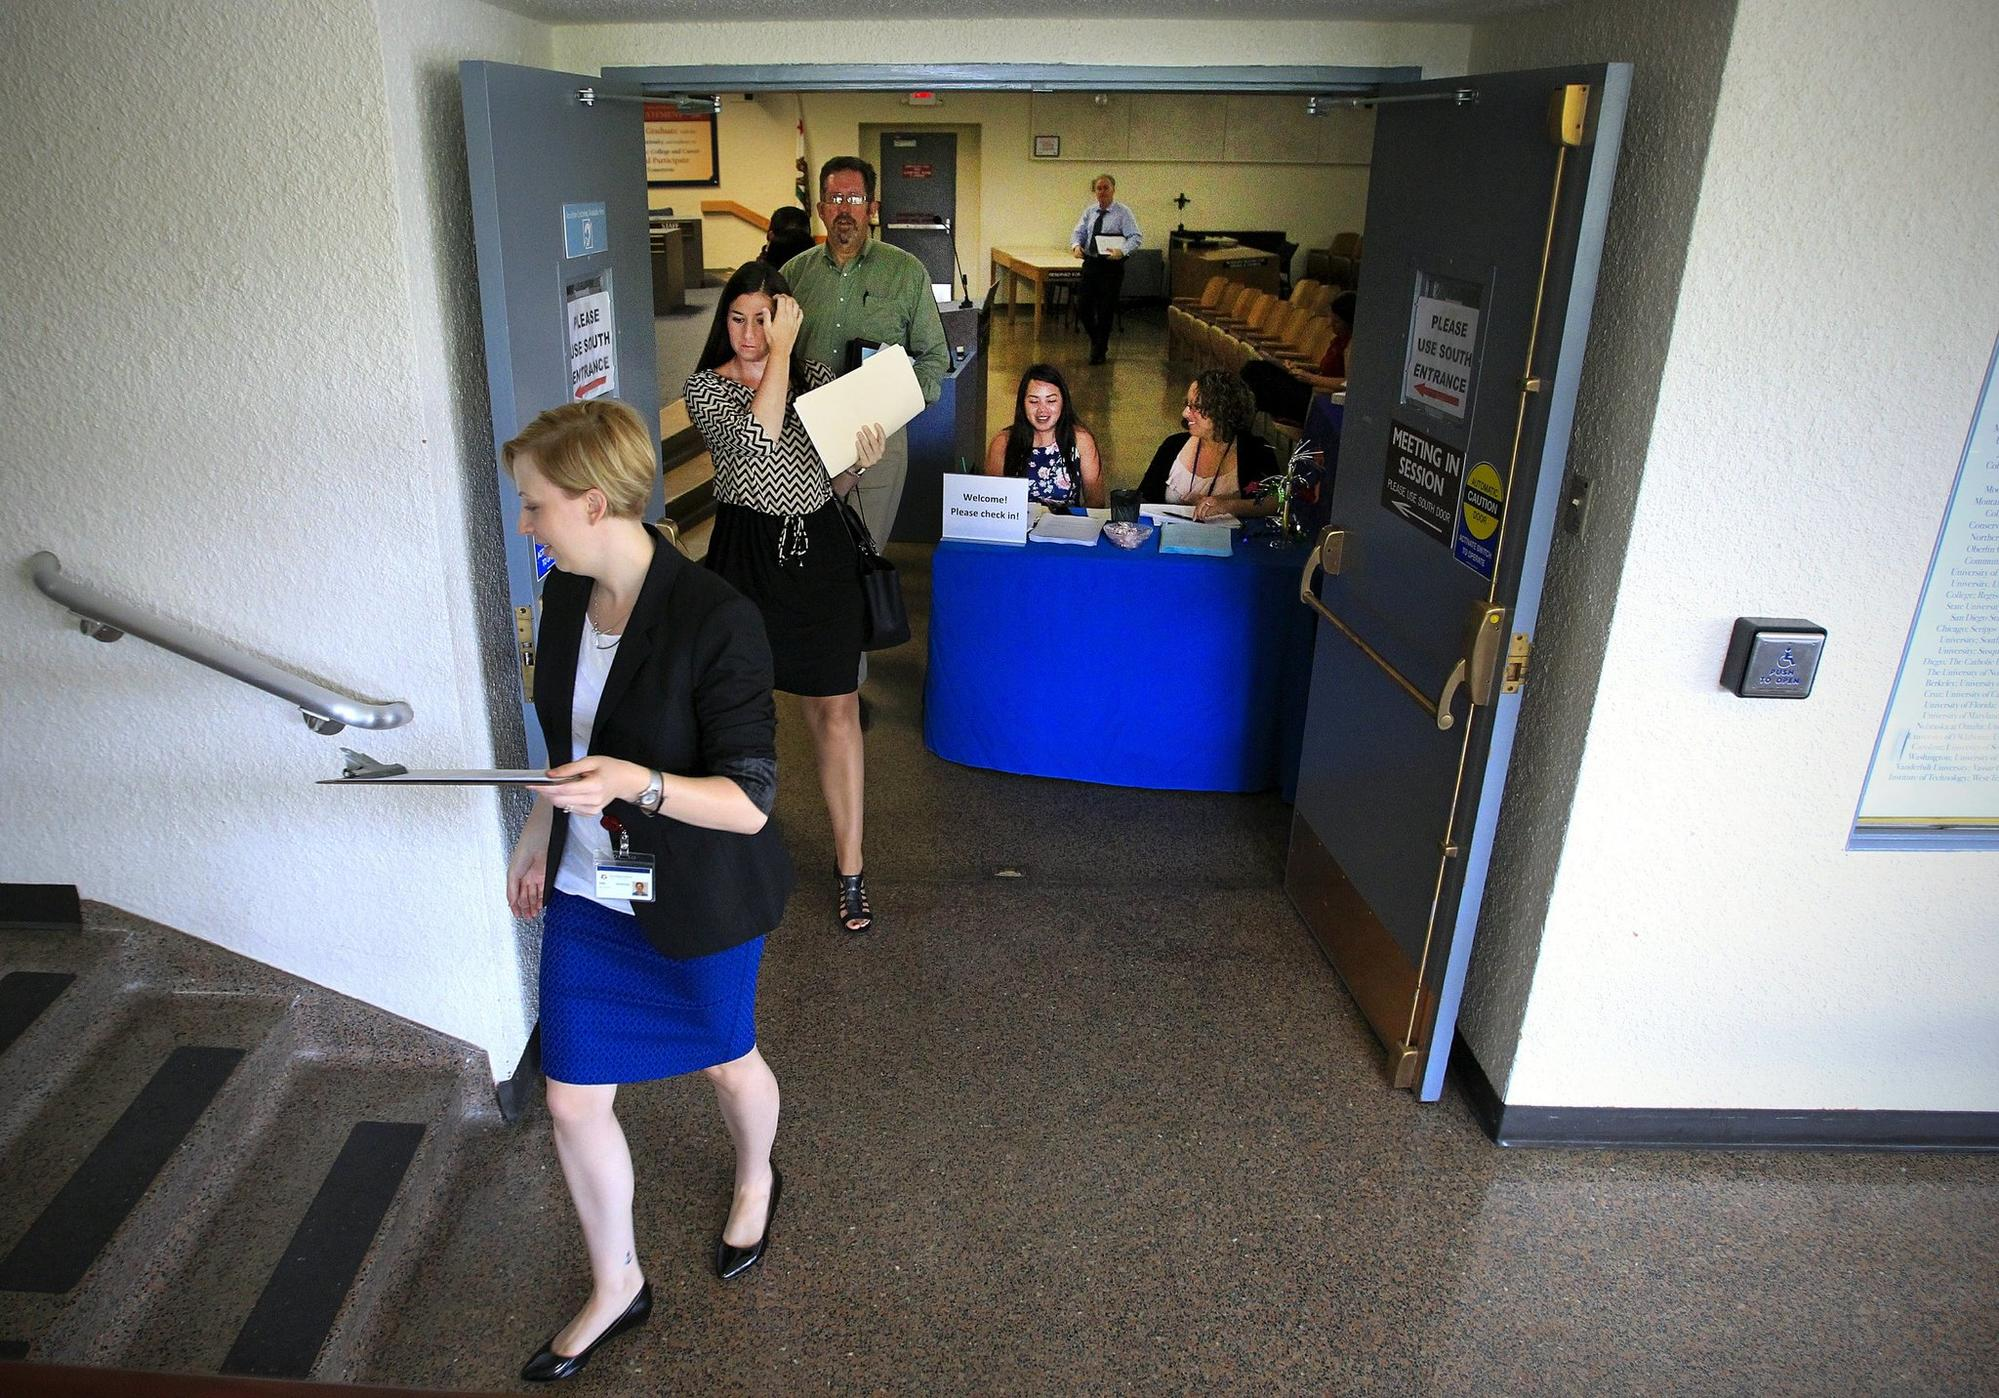 Erin Houston, left, a San Diego Unified School District human resources officer, leads a group of prospective teachers to her office for interviews during a job fair at the dist